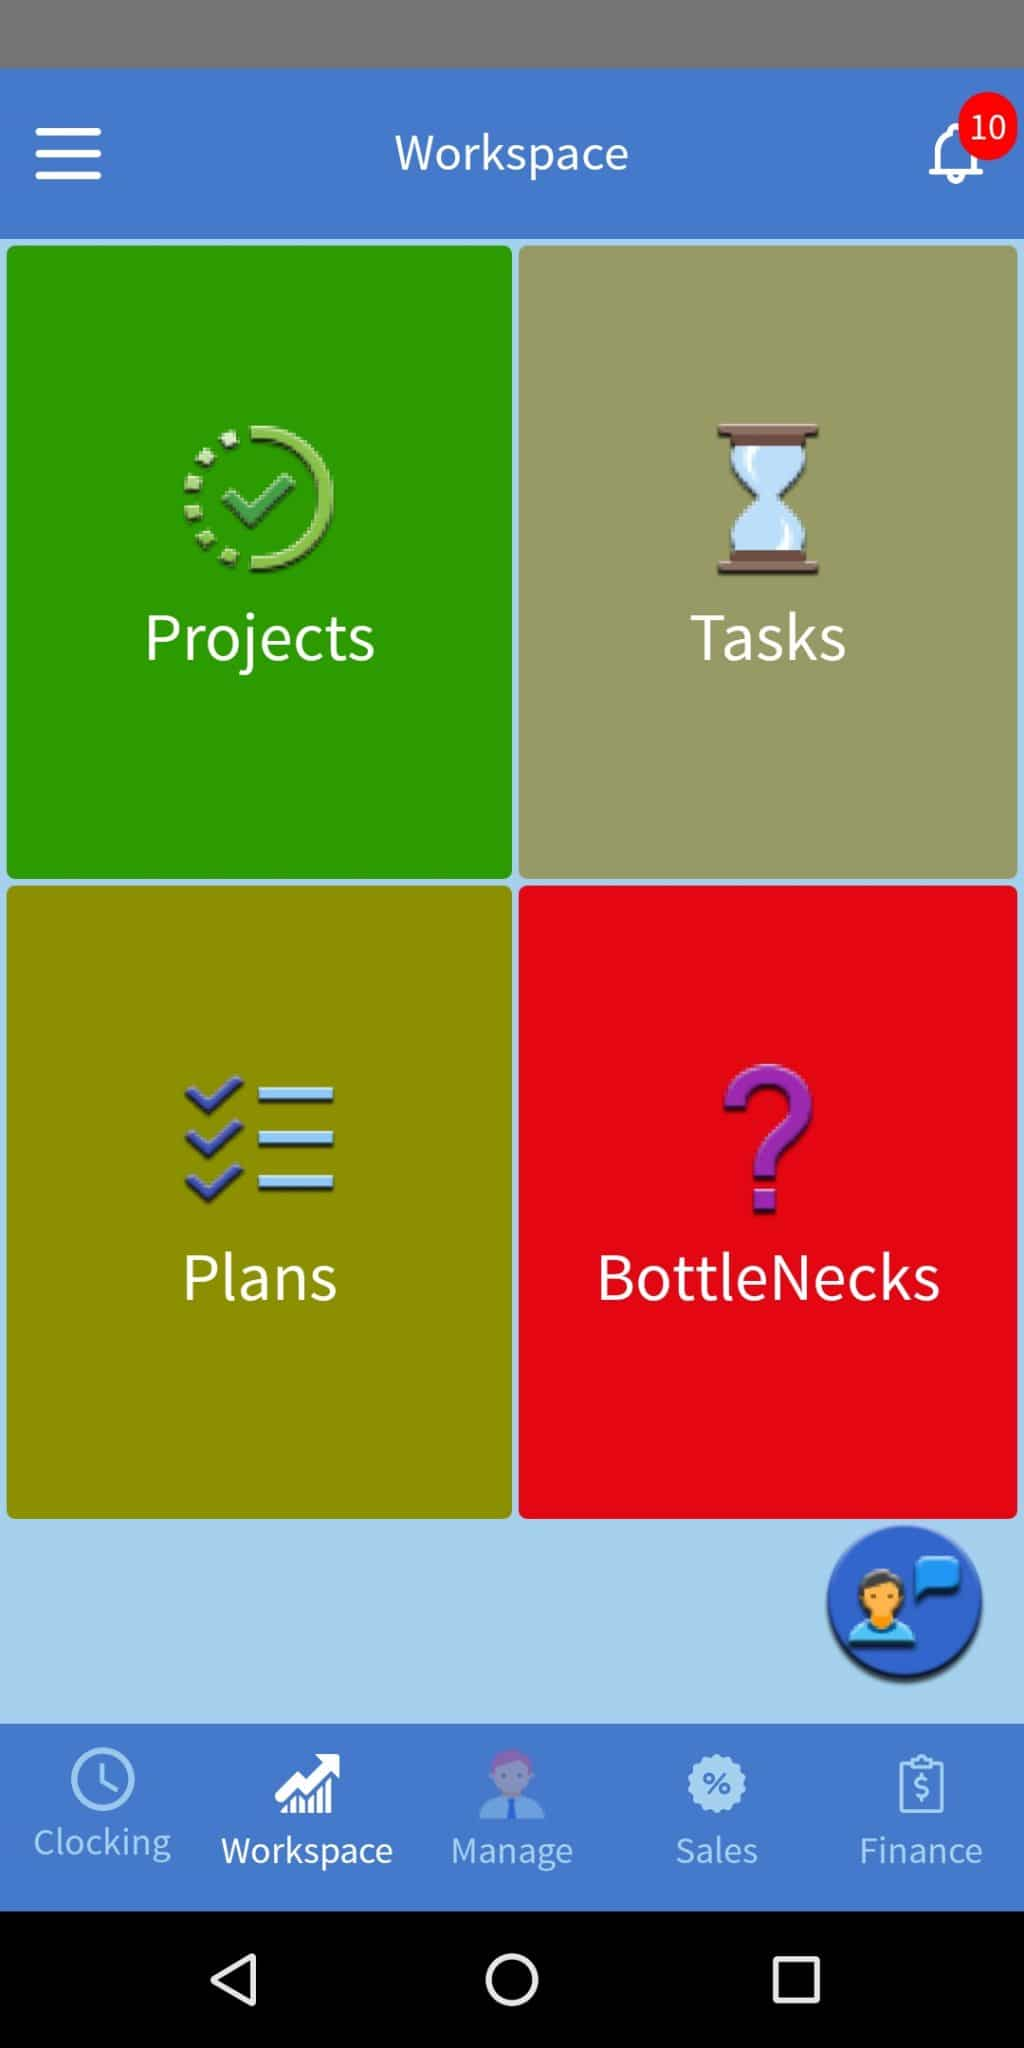 Project Management System, pms tools, project management tools, project plan, project management plan,project management software, hr management, project management app, project tracking app